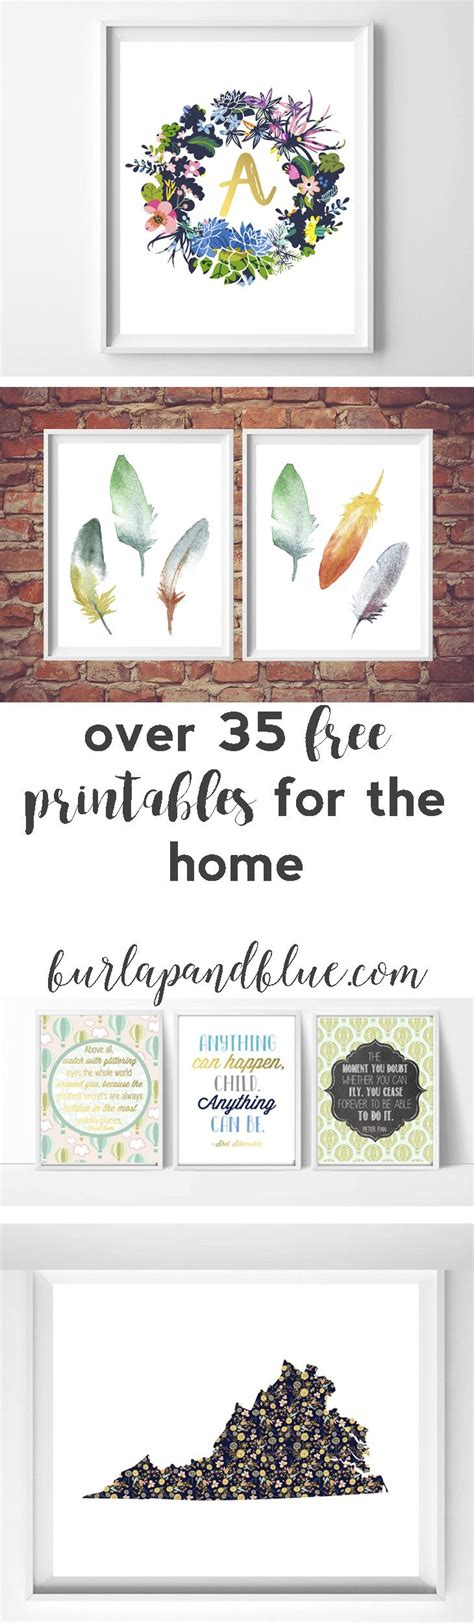 free printable home wall decor decor hacks over 35 free printables for the home lots